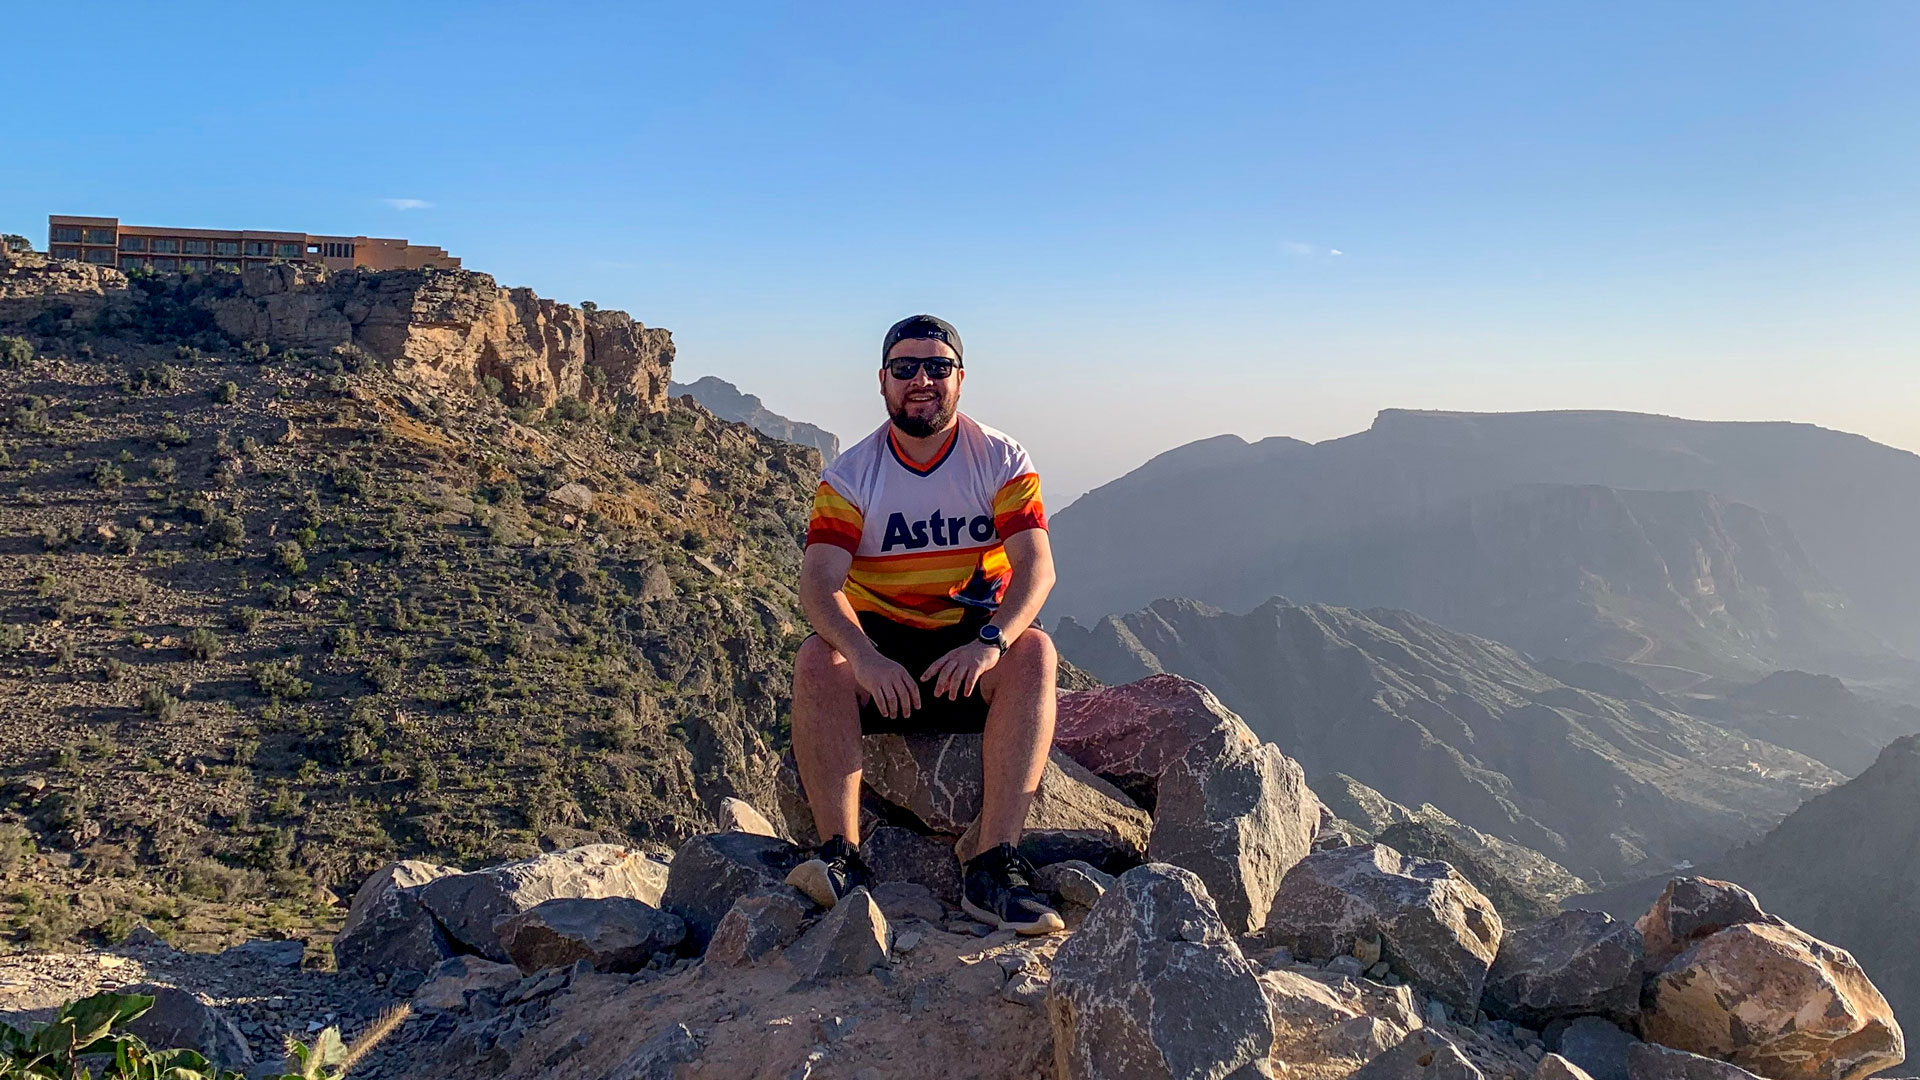 Rocky roads up the tallest mountain in Oman make for spectacular views